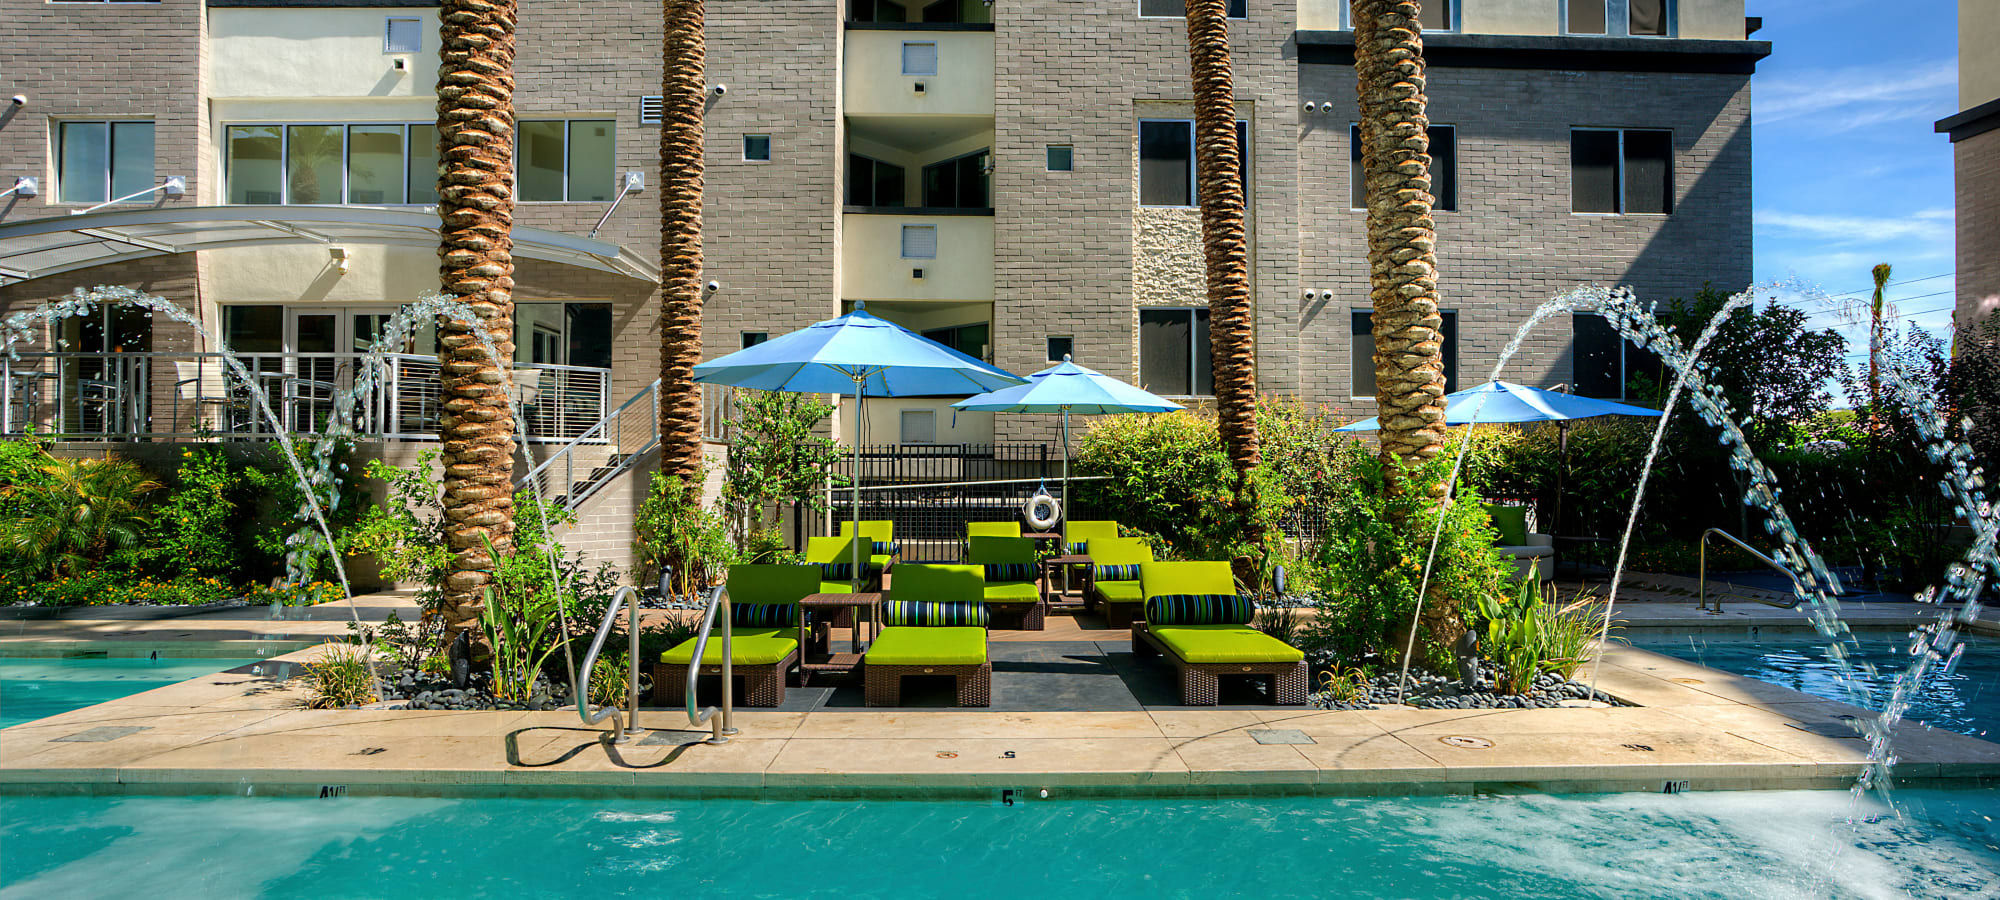 Green vegetation and fountains around the pool area at Level at Sixteenth in Phoenix, Arizona